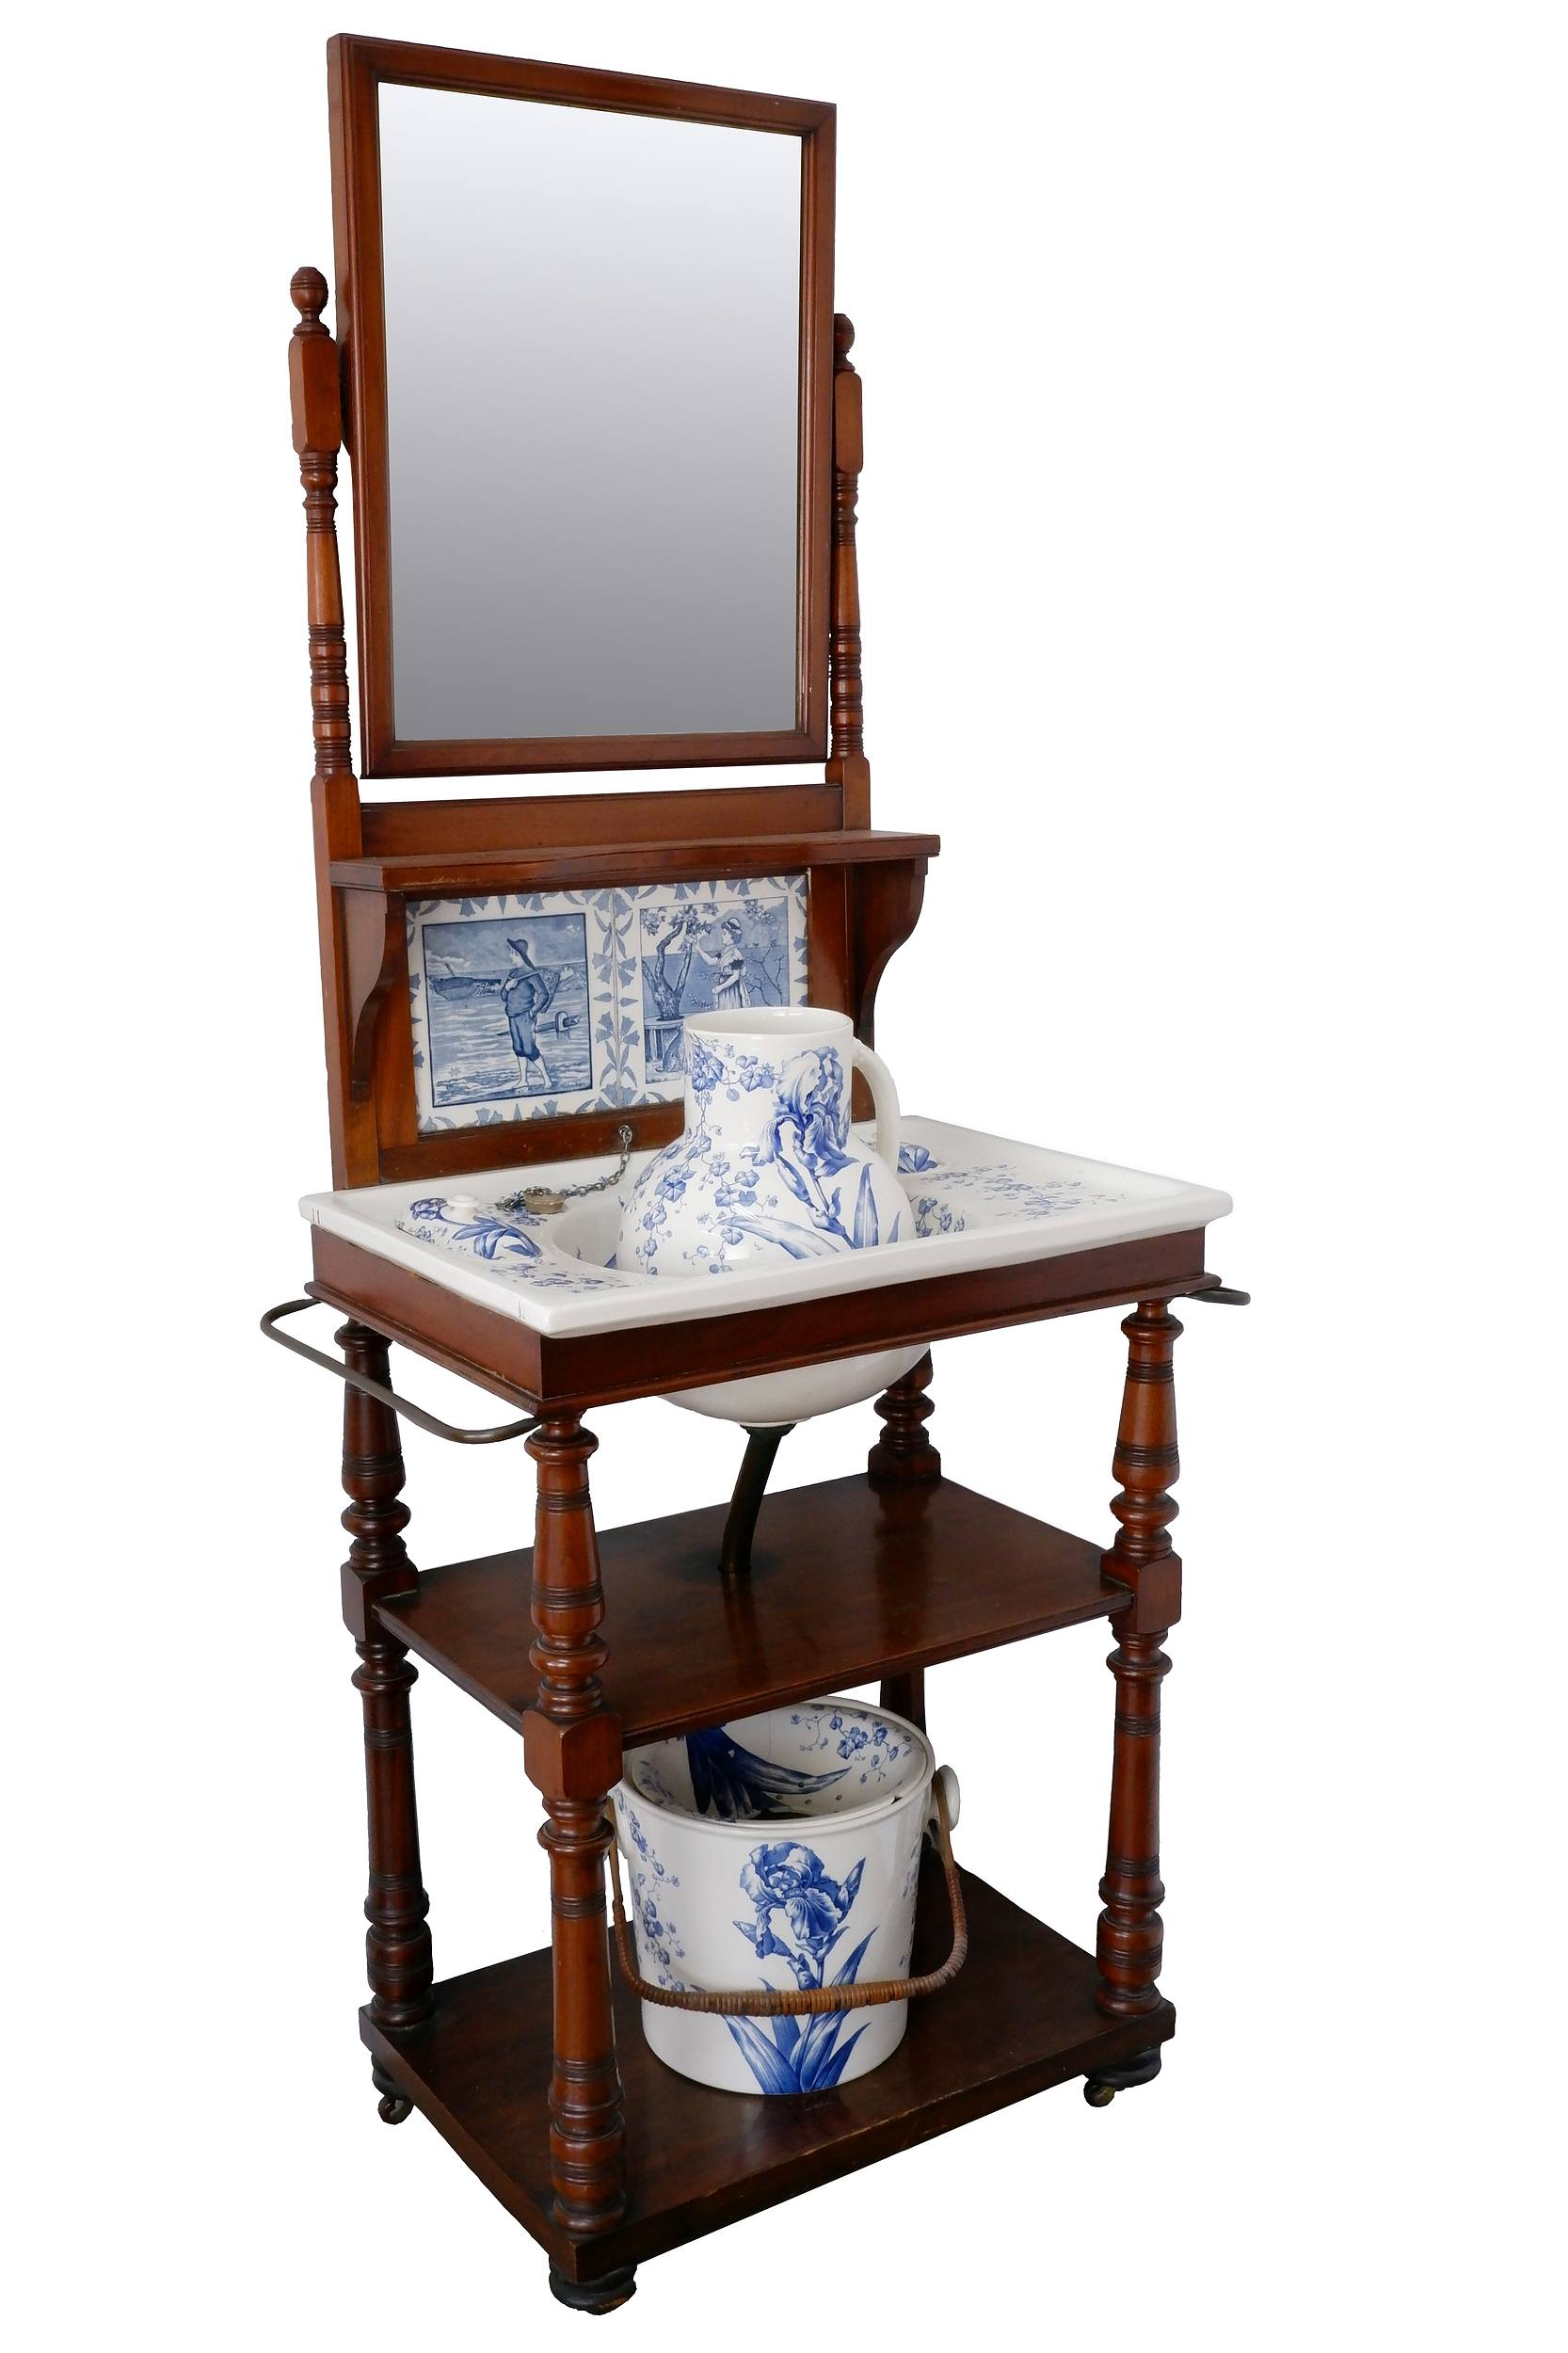 'Antique Mahogany Washstand Complete with Blue and White Porcelain Sink, Wash Jug and Waste Bucket by JC Brown; W.Westhead Moore and Company, Circa 1880'